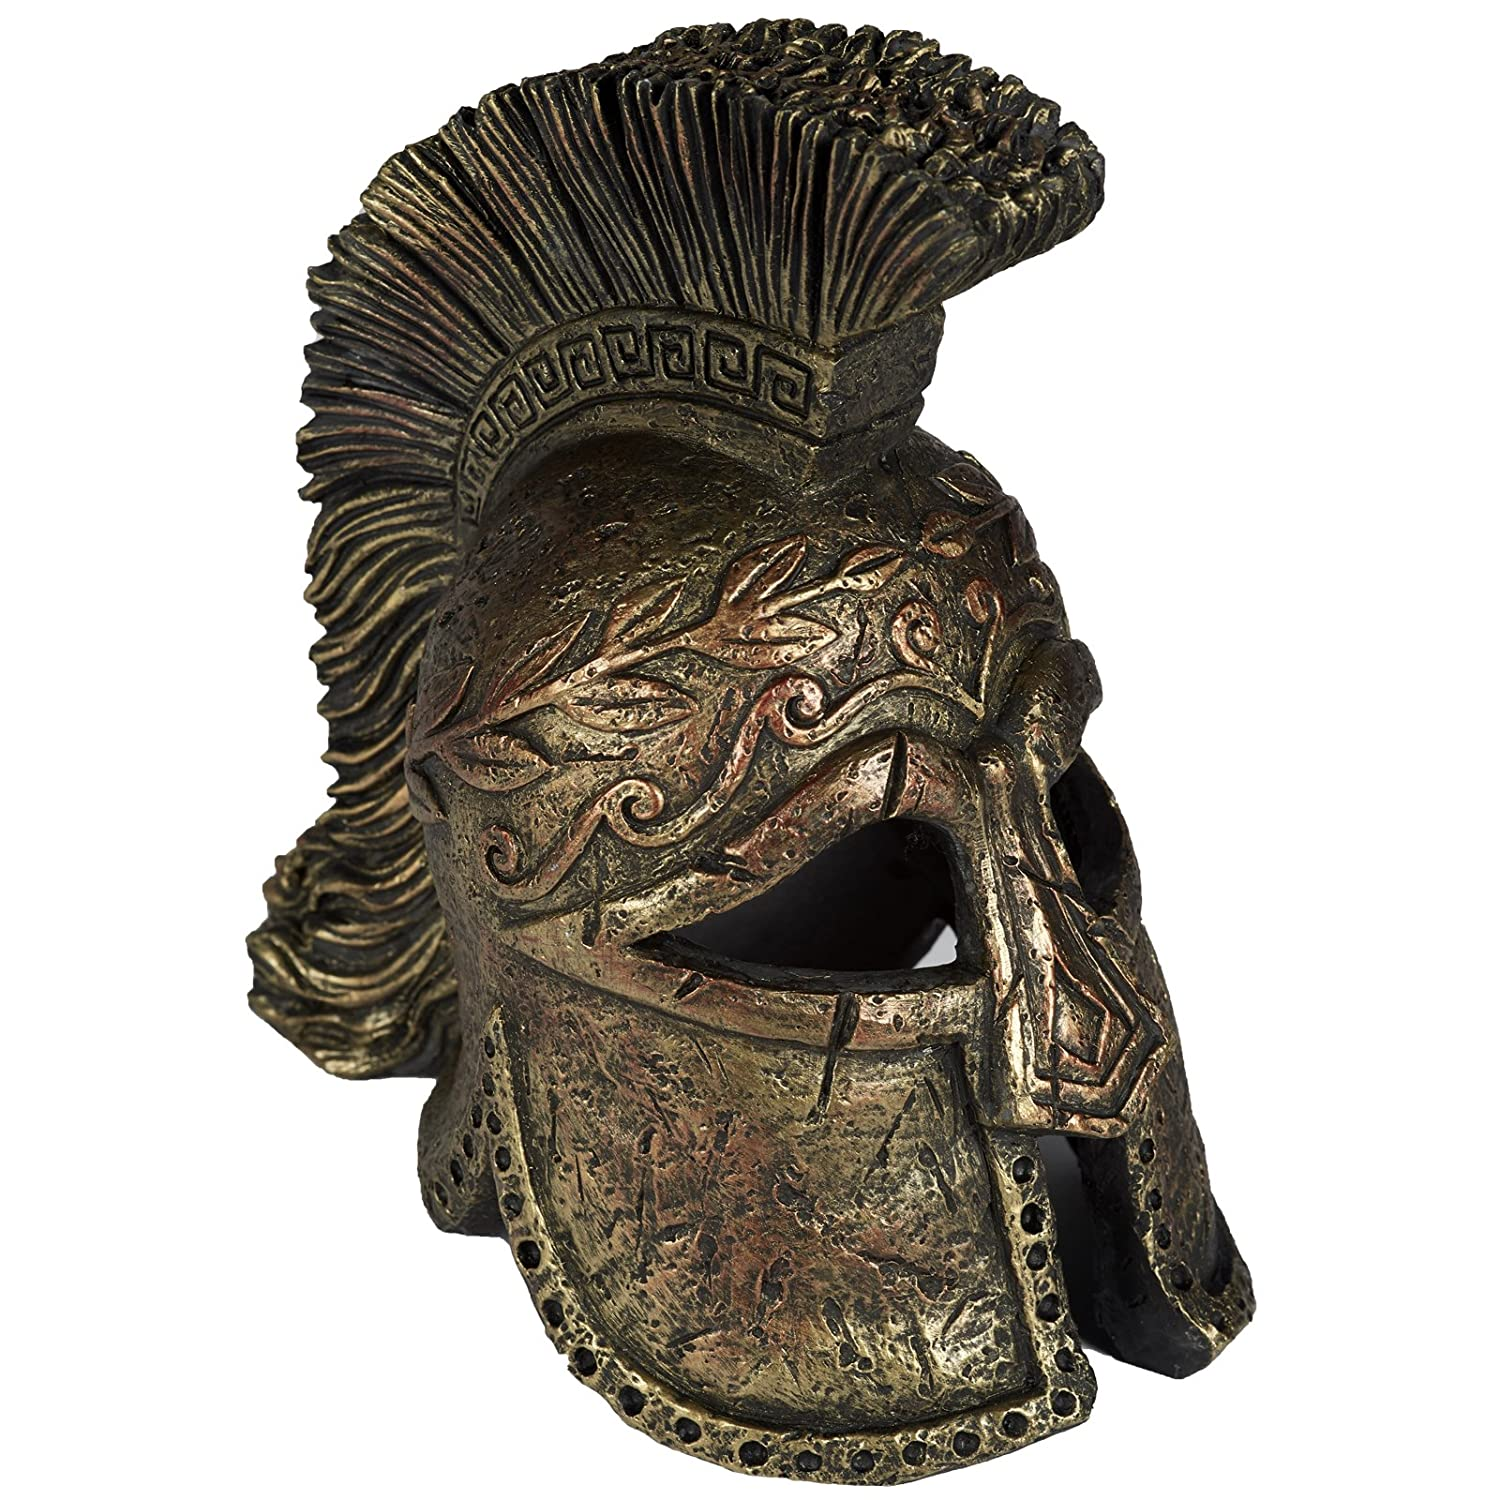 Pet Ting Roman Headdress Aquatic Ornament - Aquarium Decoration - Vivarium Decoration PT382